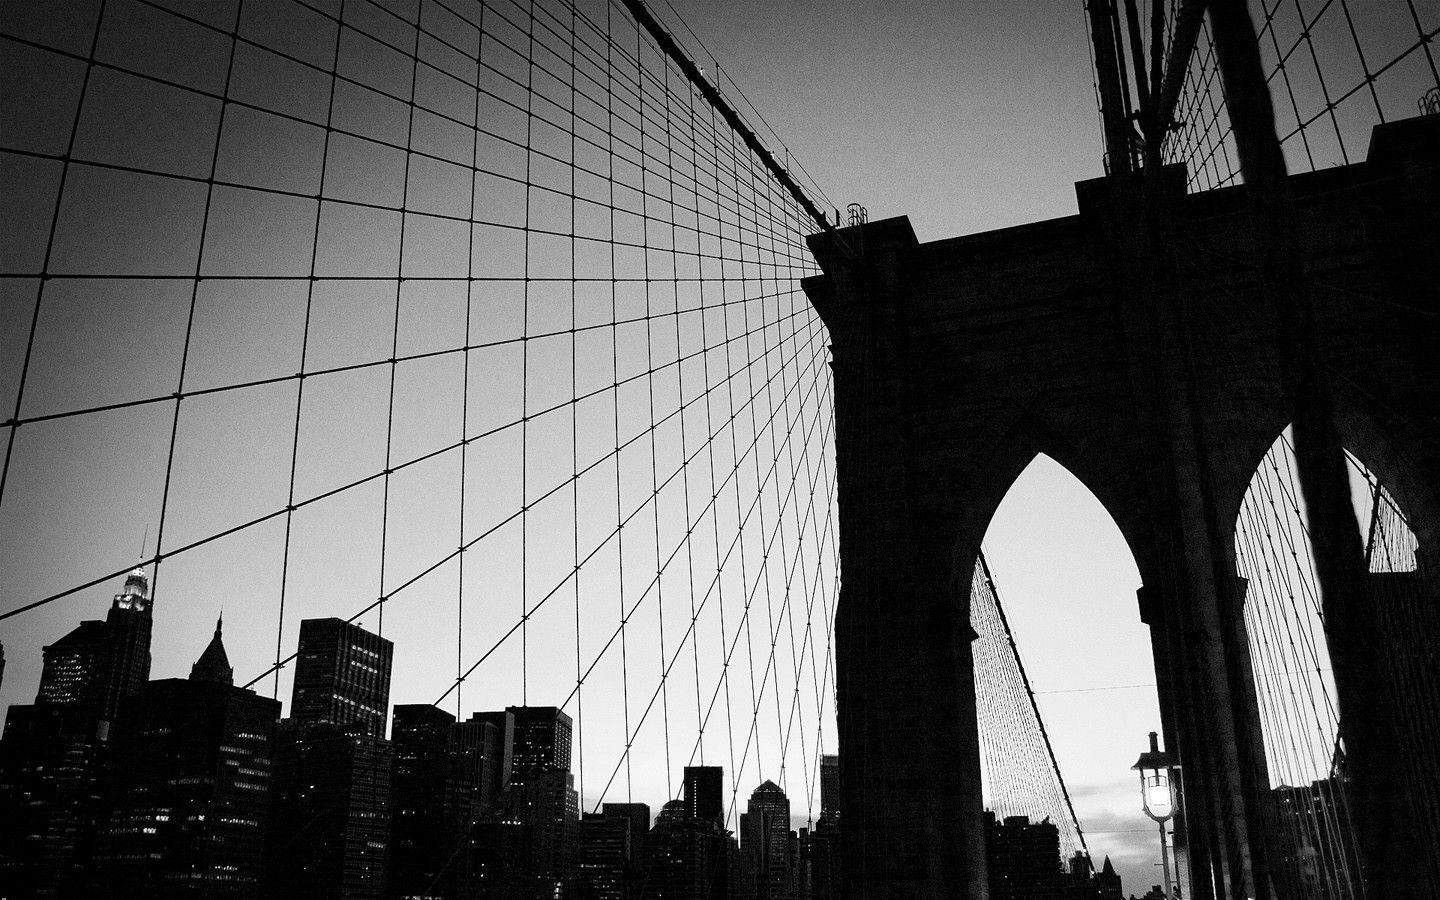 Brooklyn Bridge Computer Wallpapers, Desktop Backgrounds 1440x900